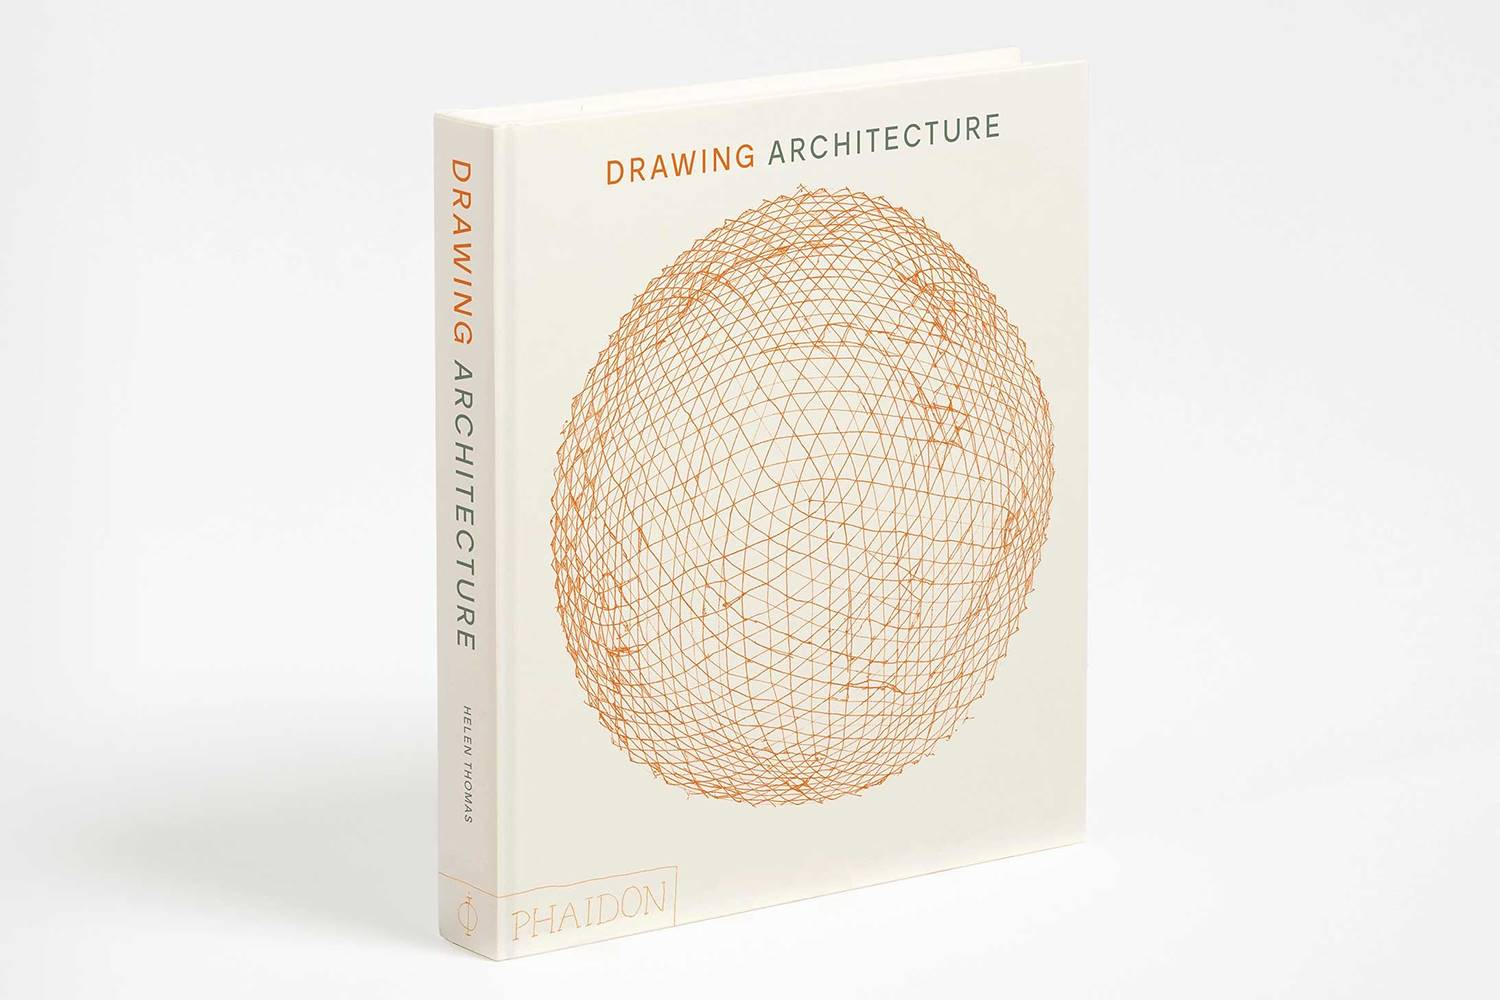 Drawing-Architecture Cover. [01] Drawing Architecture, Phaidon